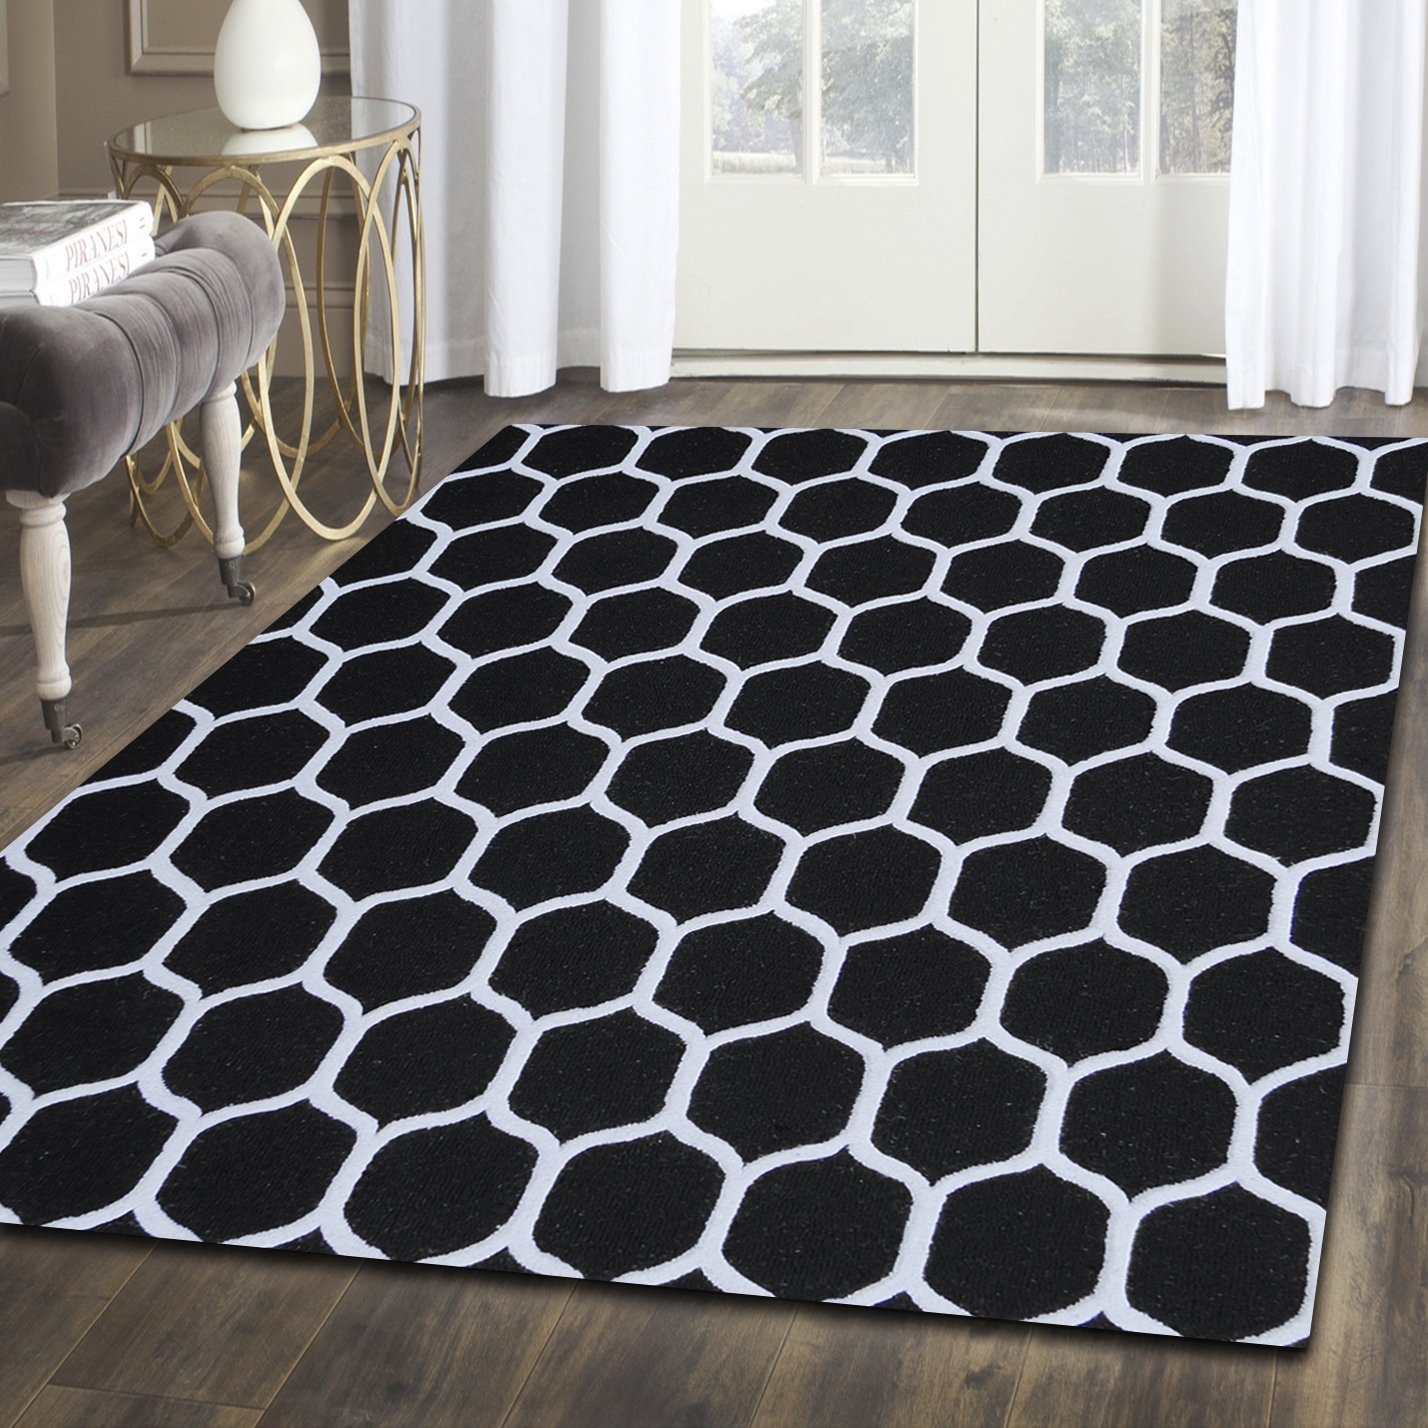 Superior Honeycomb Wool Rug, 100 Wool Pile with Cotton Backing, Hand Tufted Luxury Rug, Contemporary Geometric Trellis Pattern – Black Silver, 5 x 8